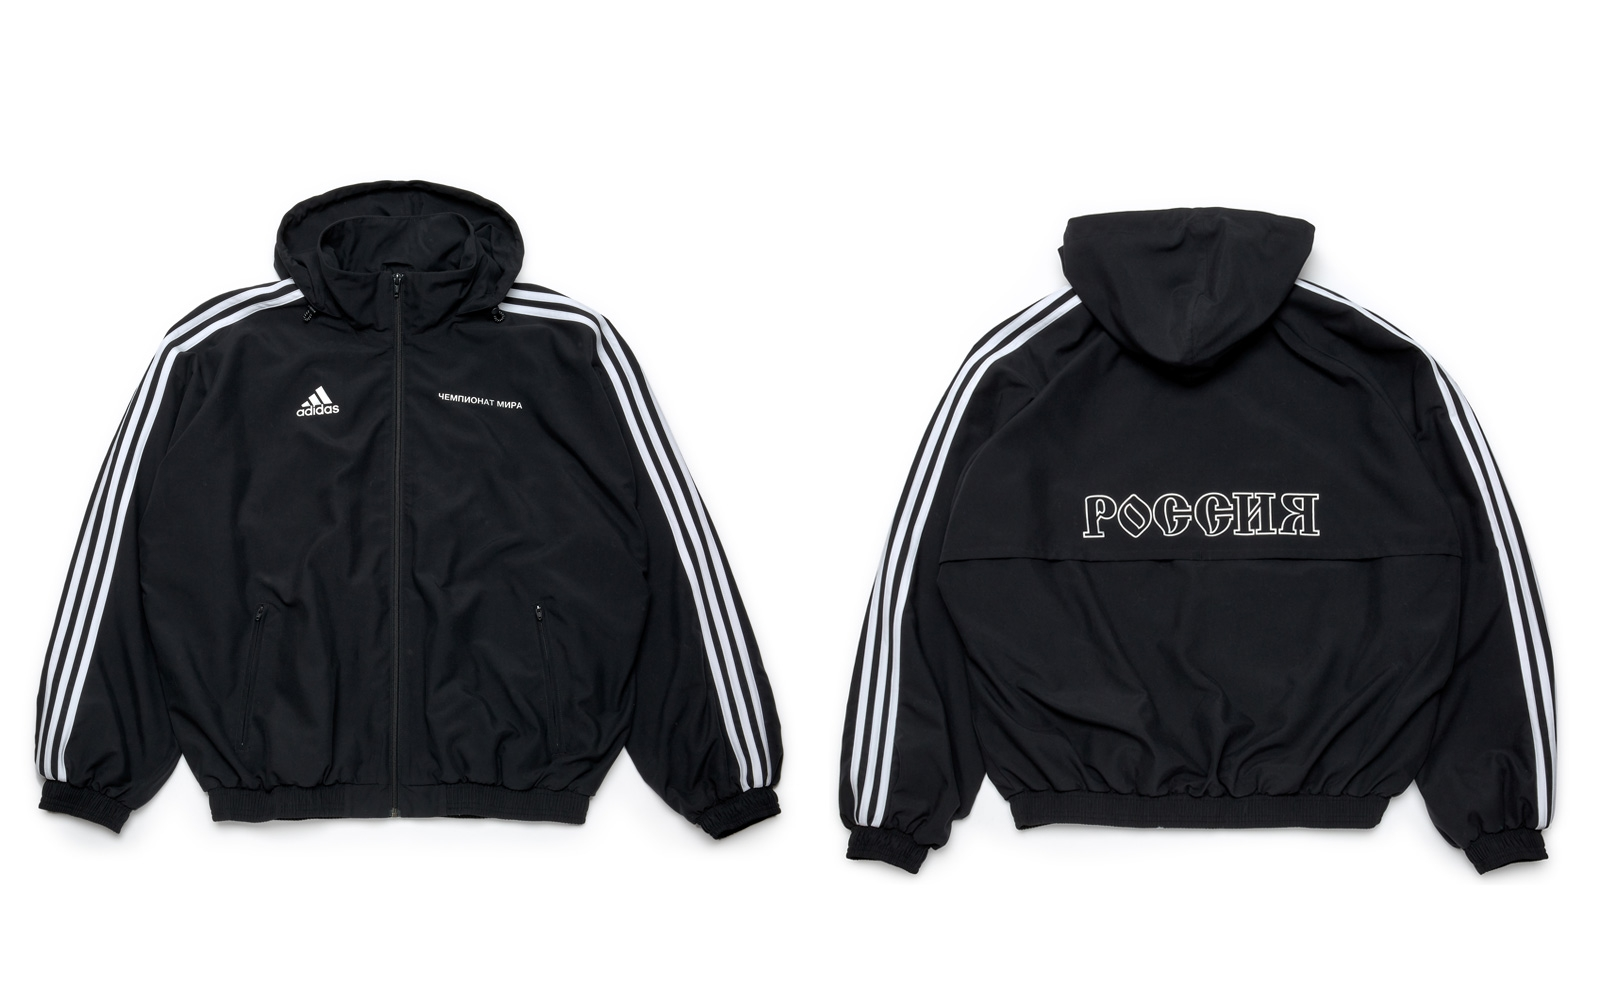 gosha-rubchinskiy-2018aw-1st-delivery-release-20180707